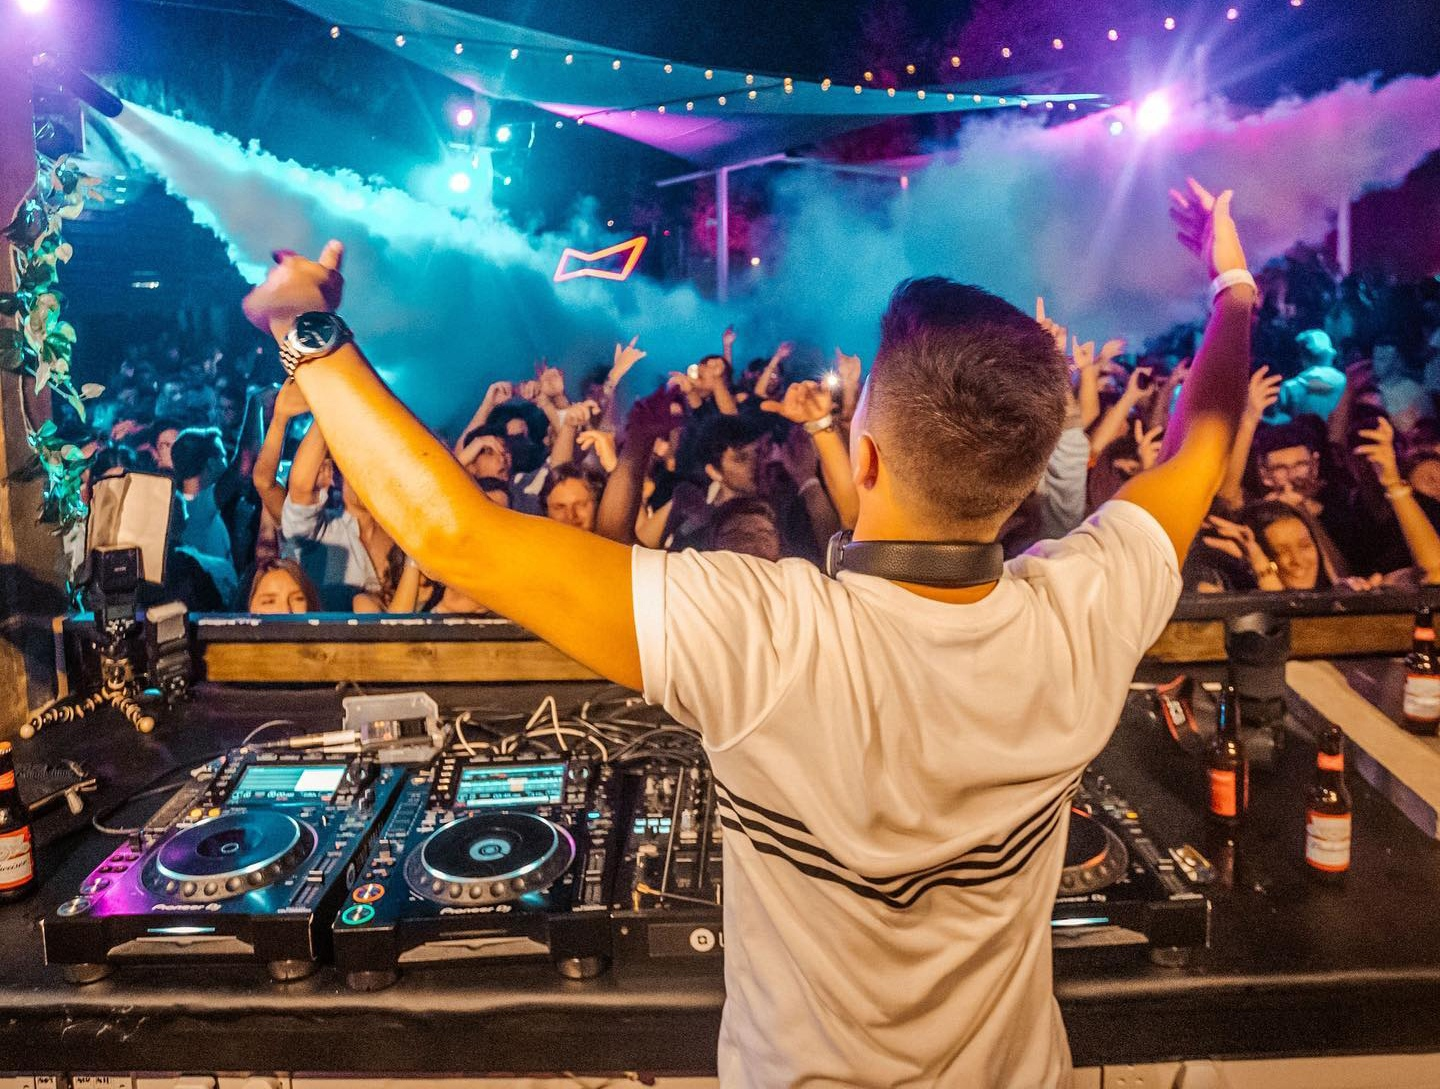 Read more about the article Local DJ and producer Edd featured on BBC radio